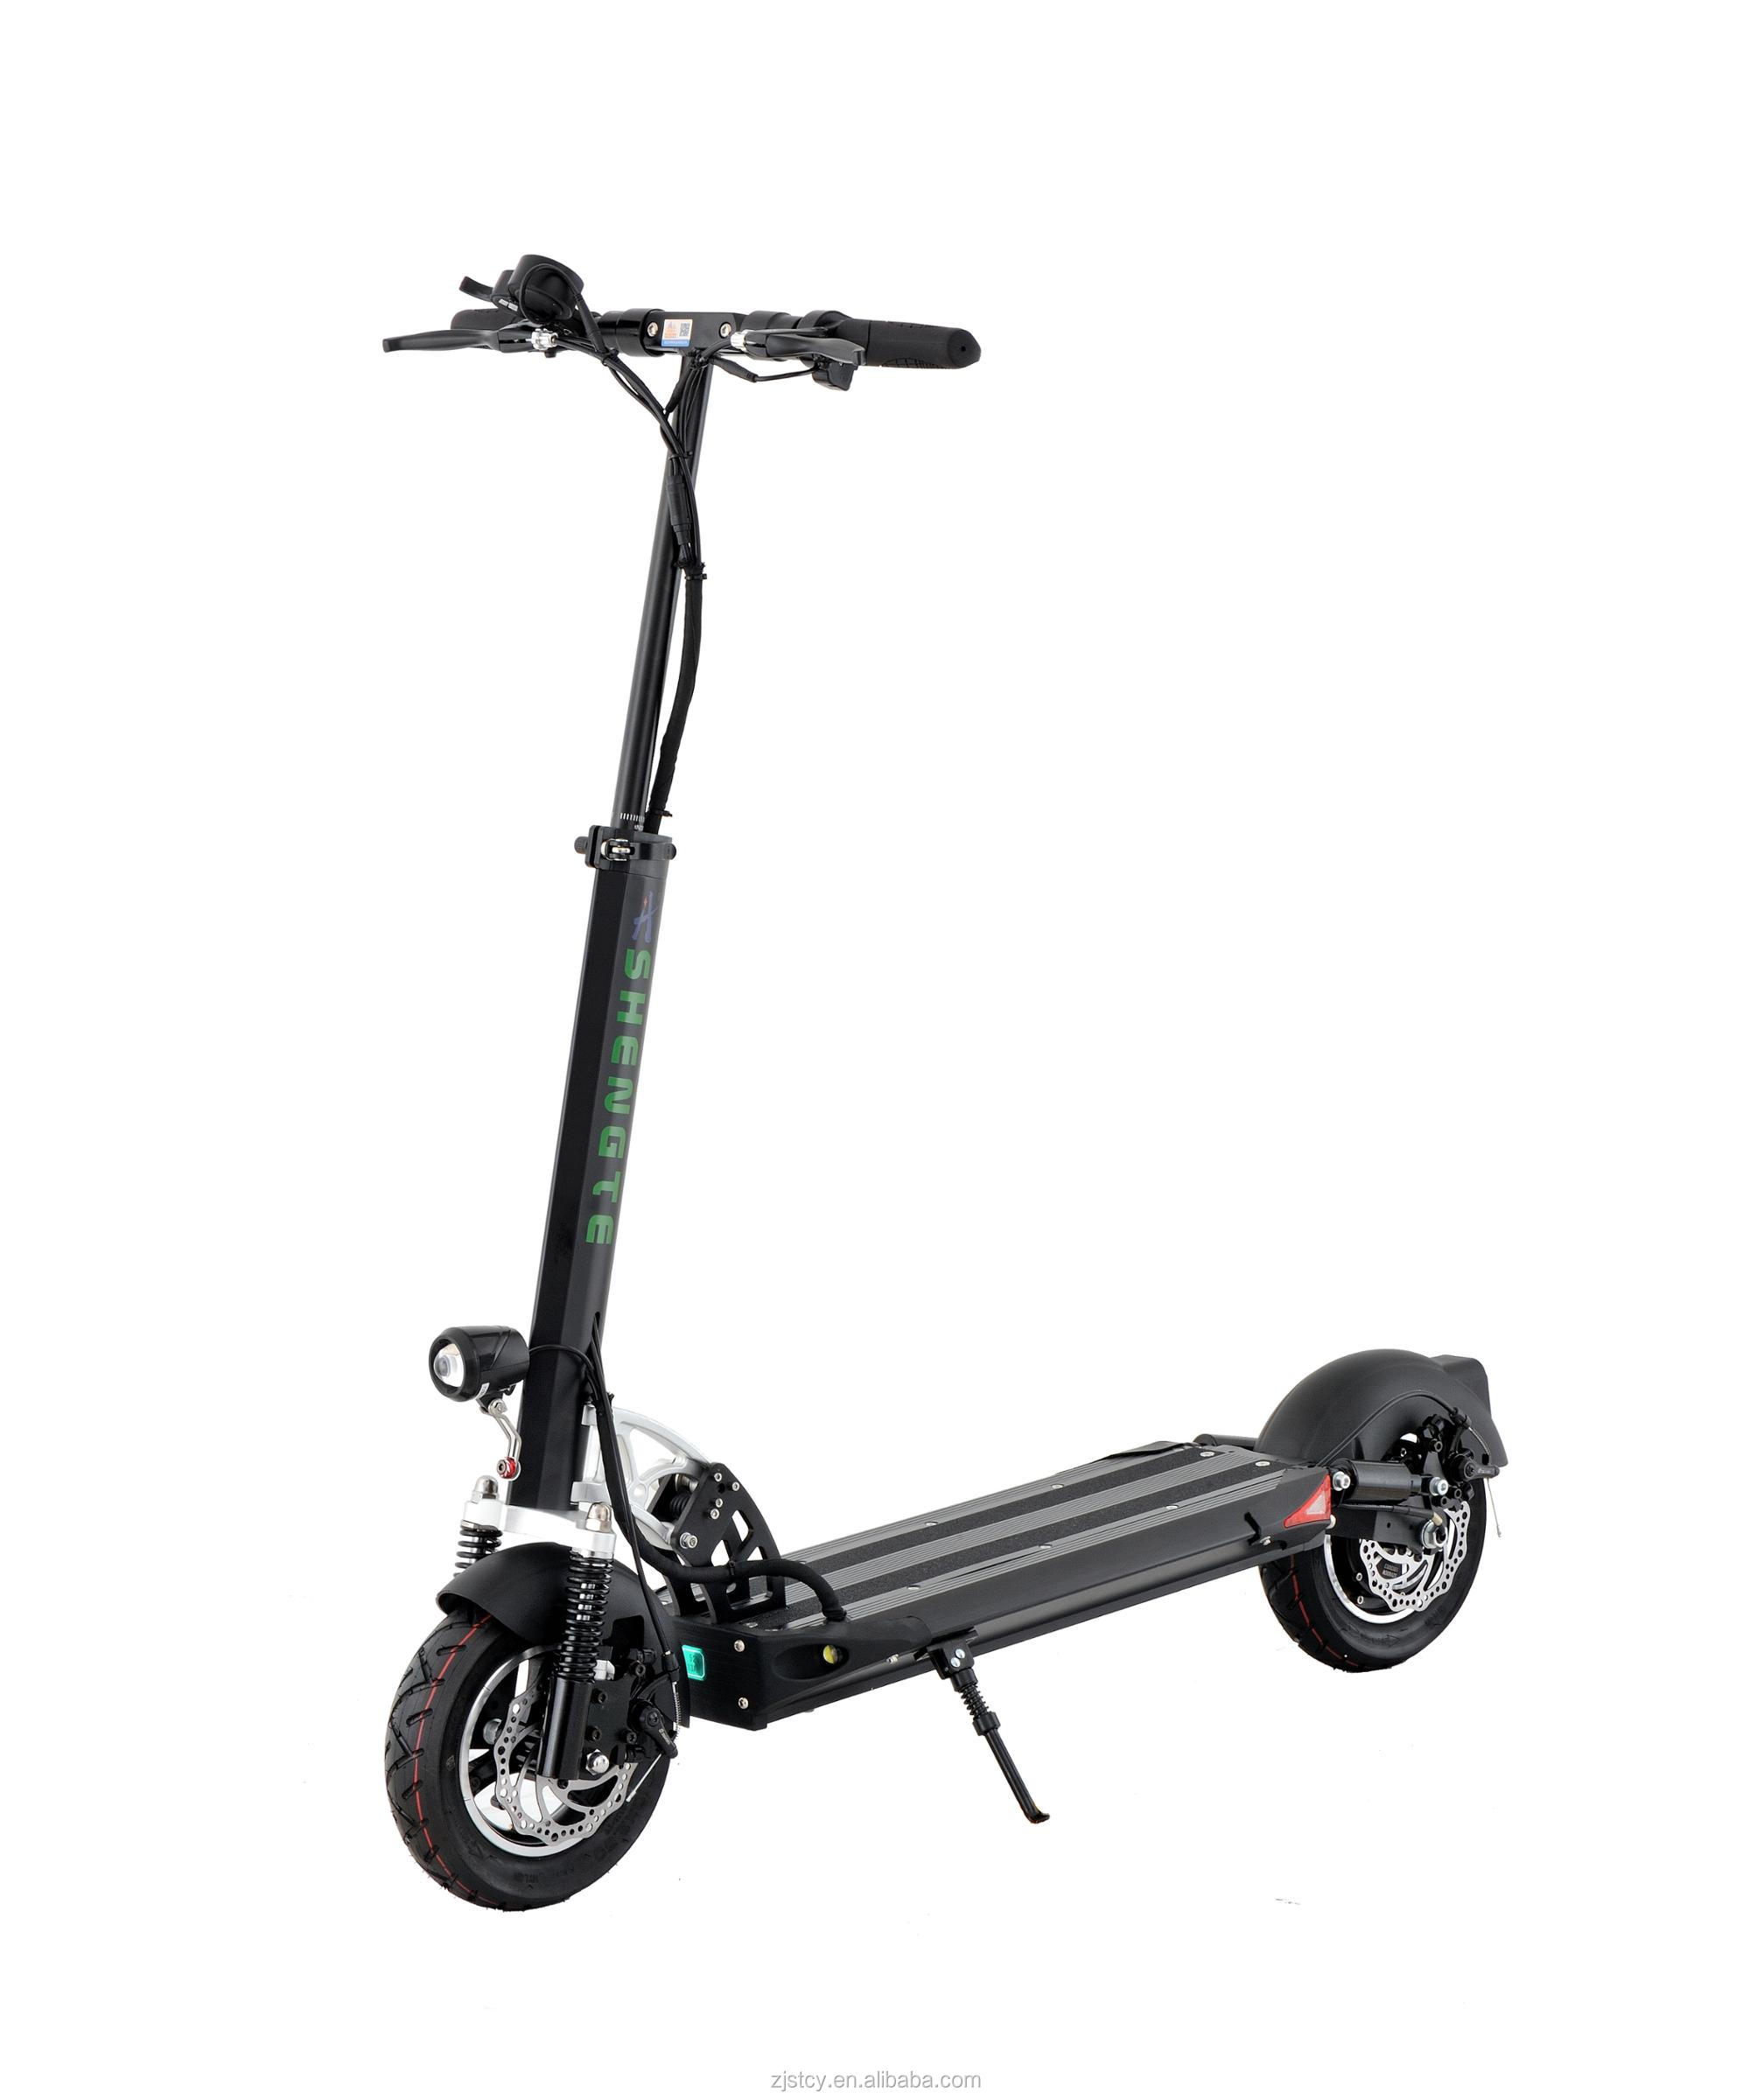 New Modle Black Speedway 4 High Quality Electric